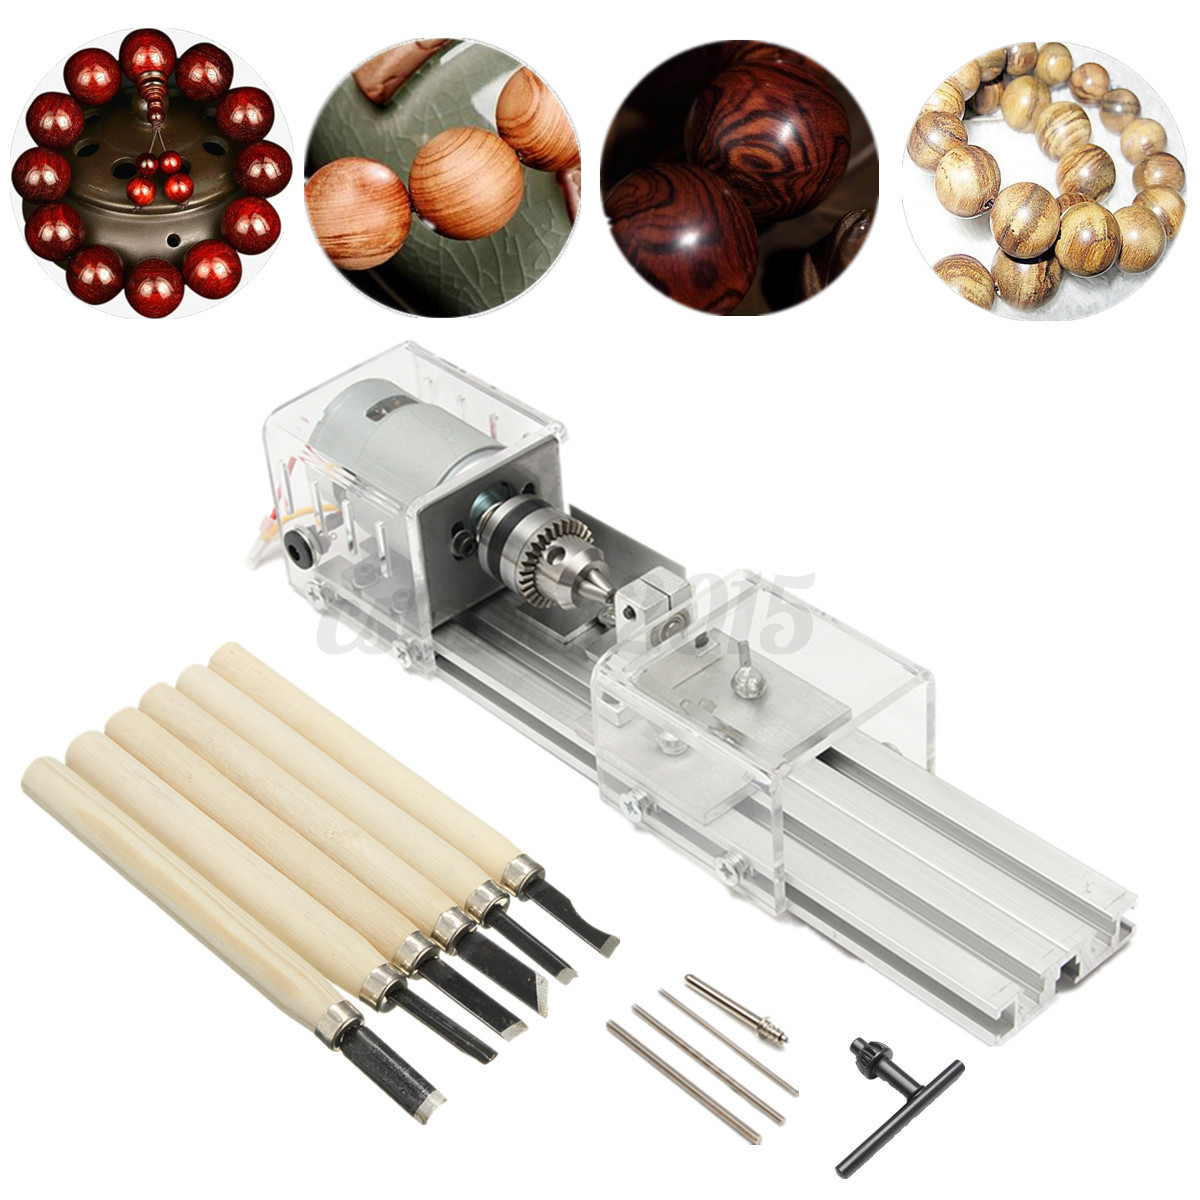 Woodworking DIY Machine Lathe Beads Polisher Table Saw Cutting Drill ...